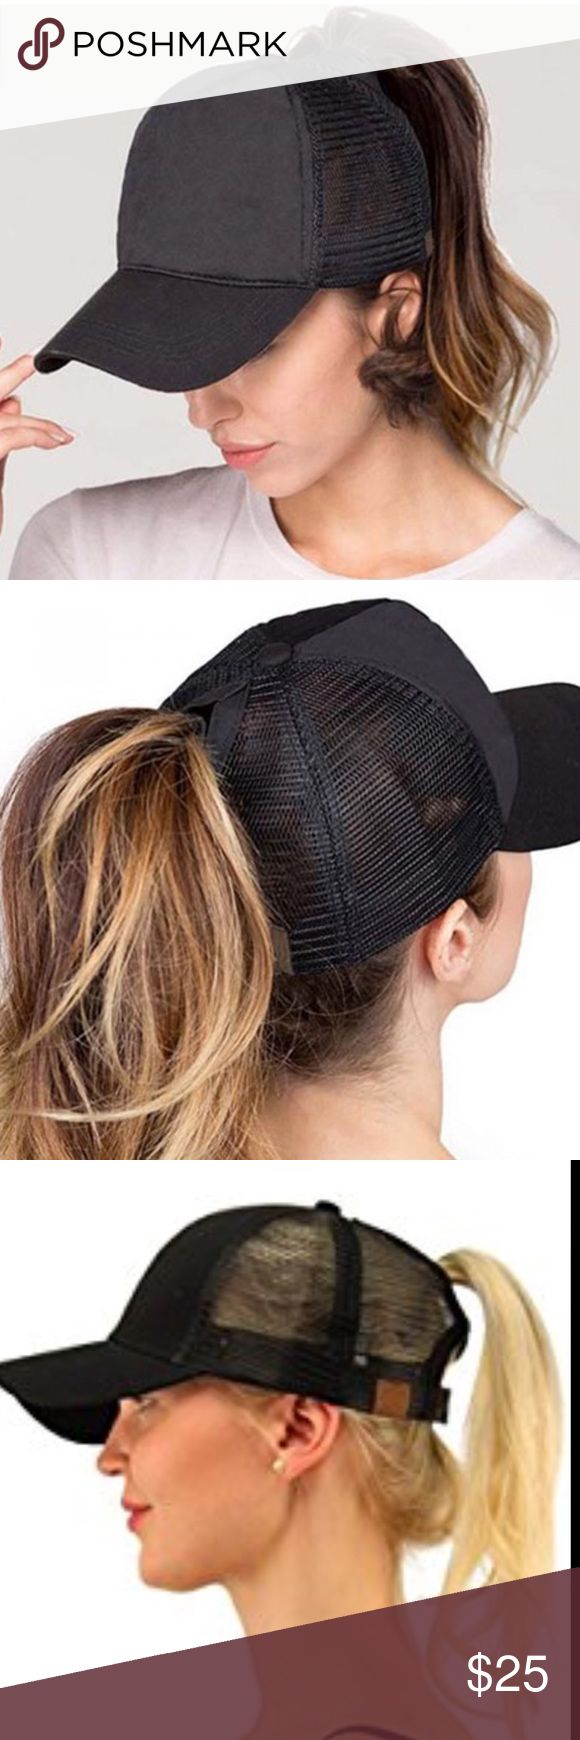 """🆕 Ponycap Messy High Bun Ponytail Mesh Cap One size fits most with adjustable hook and loop fastener. Ponytail slot: 3"""" by 5"""". Perfect for pulling your messy bun or high ponytail through . Simply pull hair through slot and adjust to desired style. Even suitable for man buns! This listing is for black . Boutique Accessories Hats"""